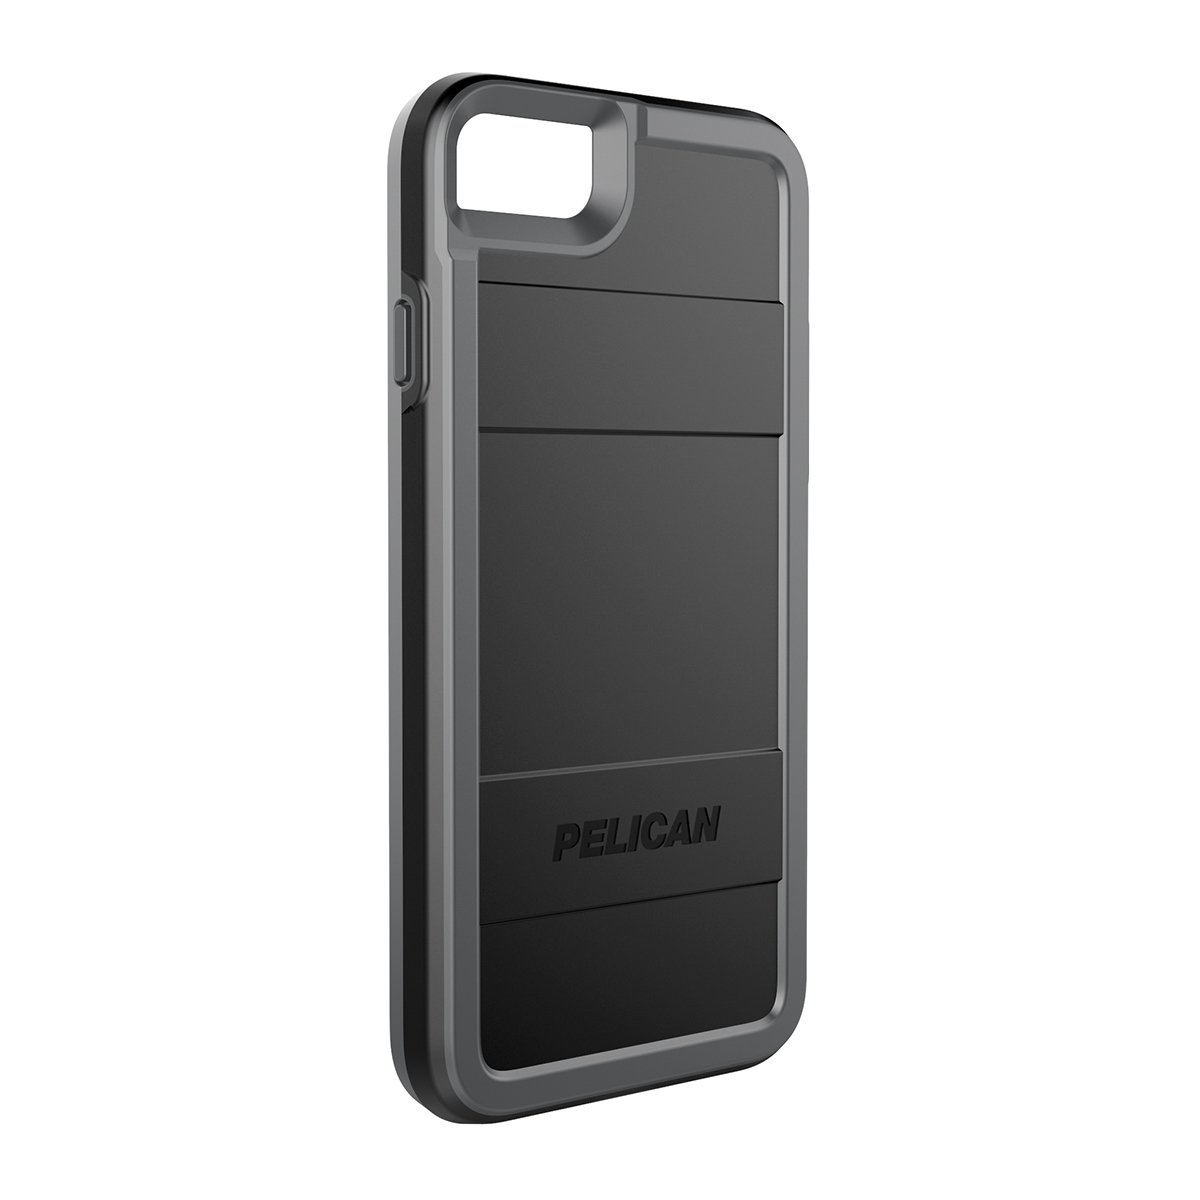 Pelican Protector Iphone 7 Case Black Gray Cell Delcell Carbon Casing For Galaxy Note 3 Phones Accessories